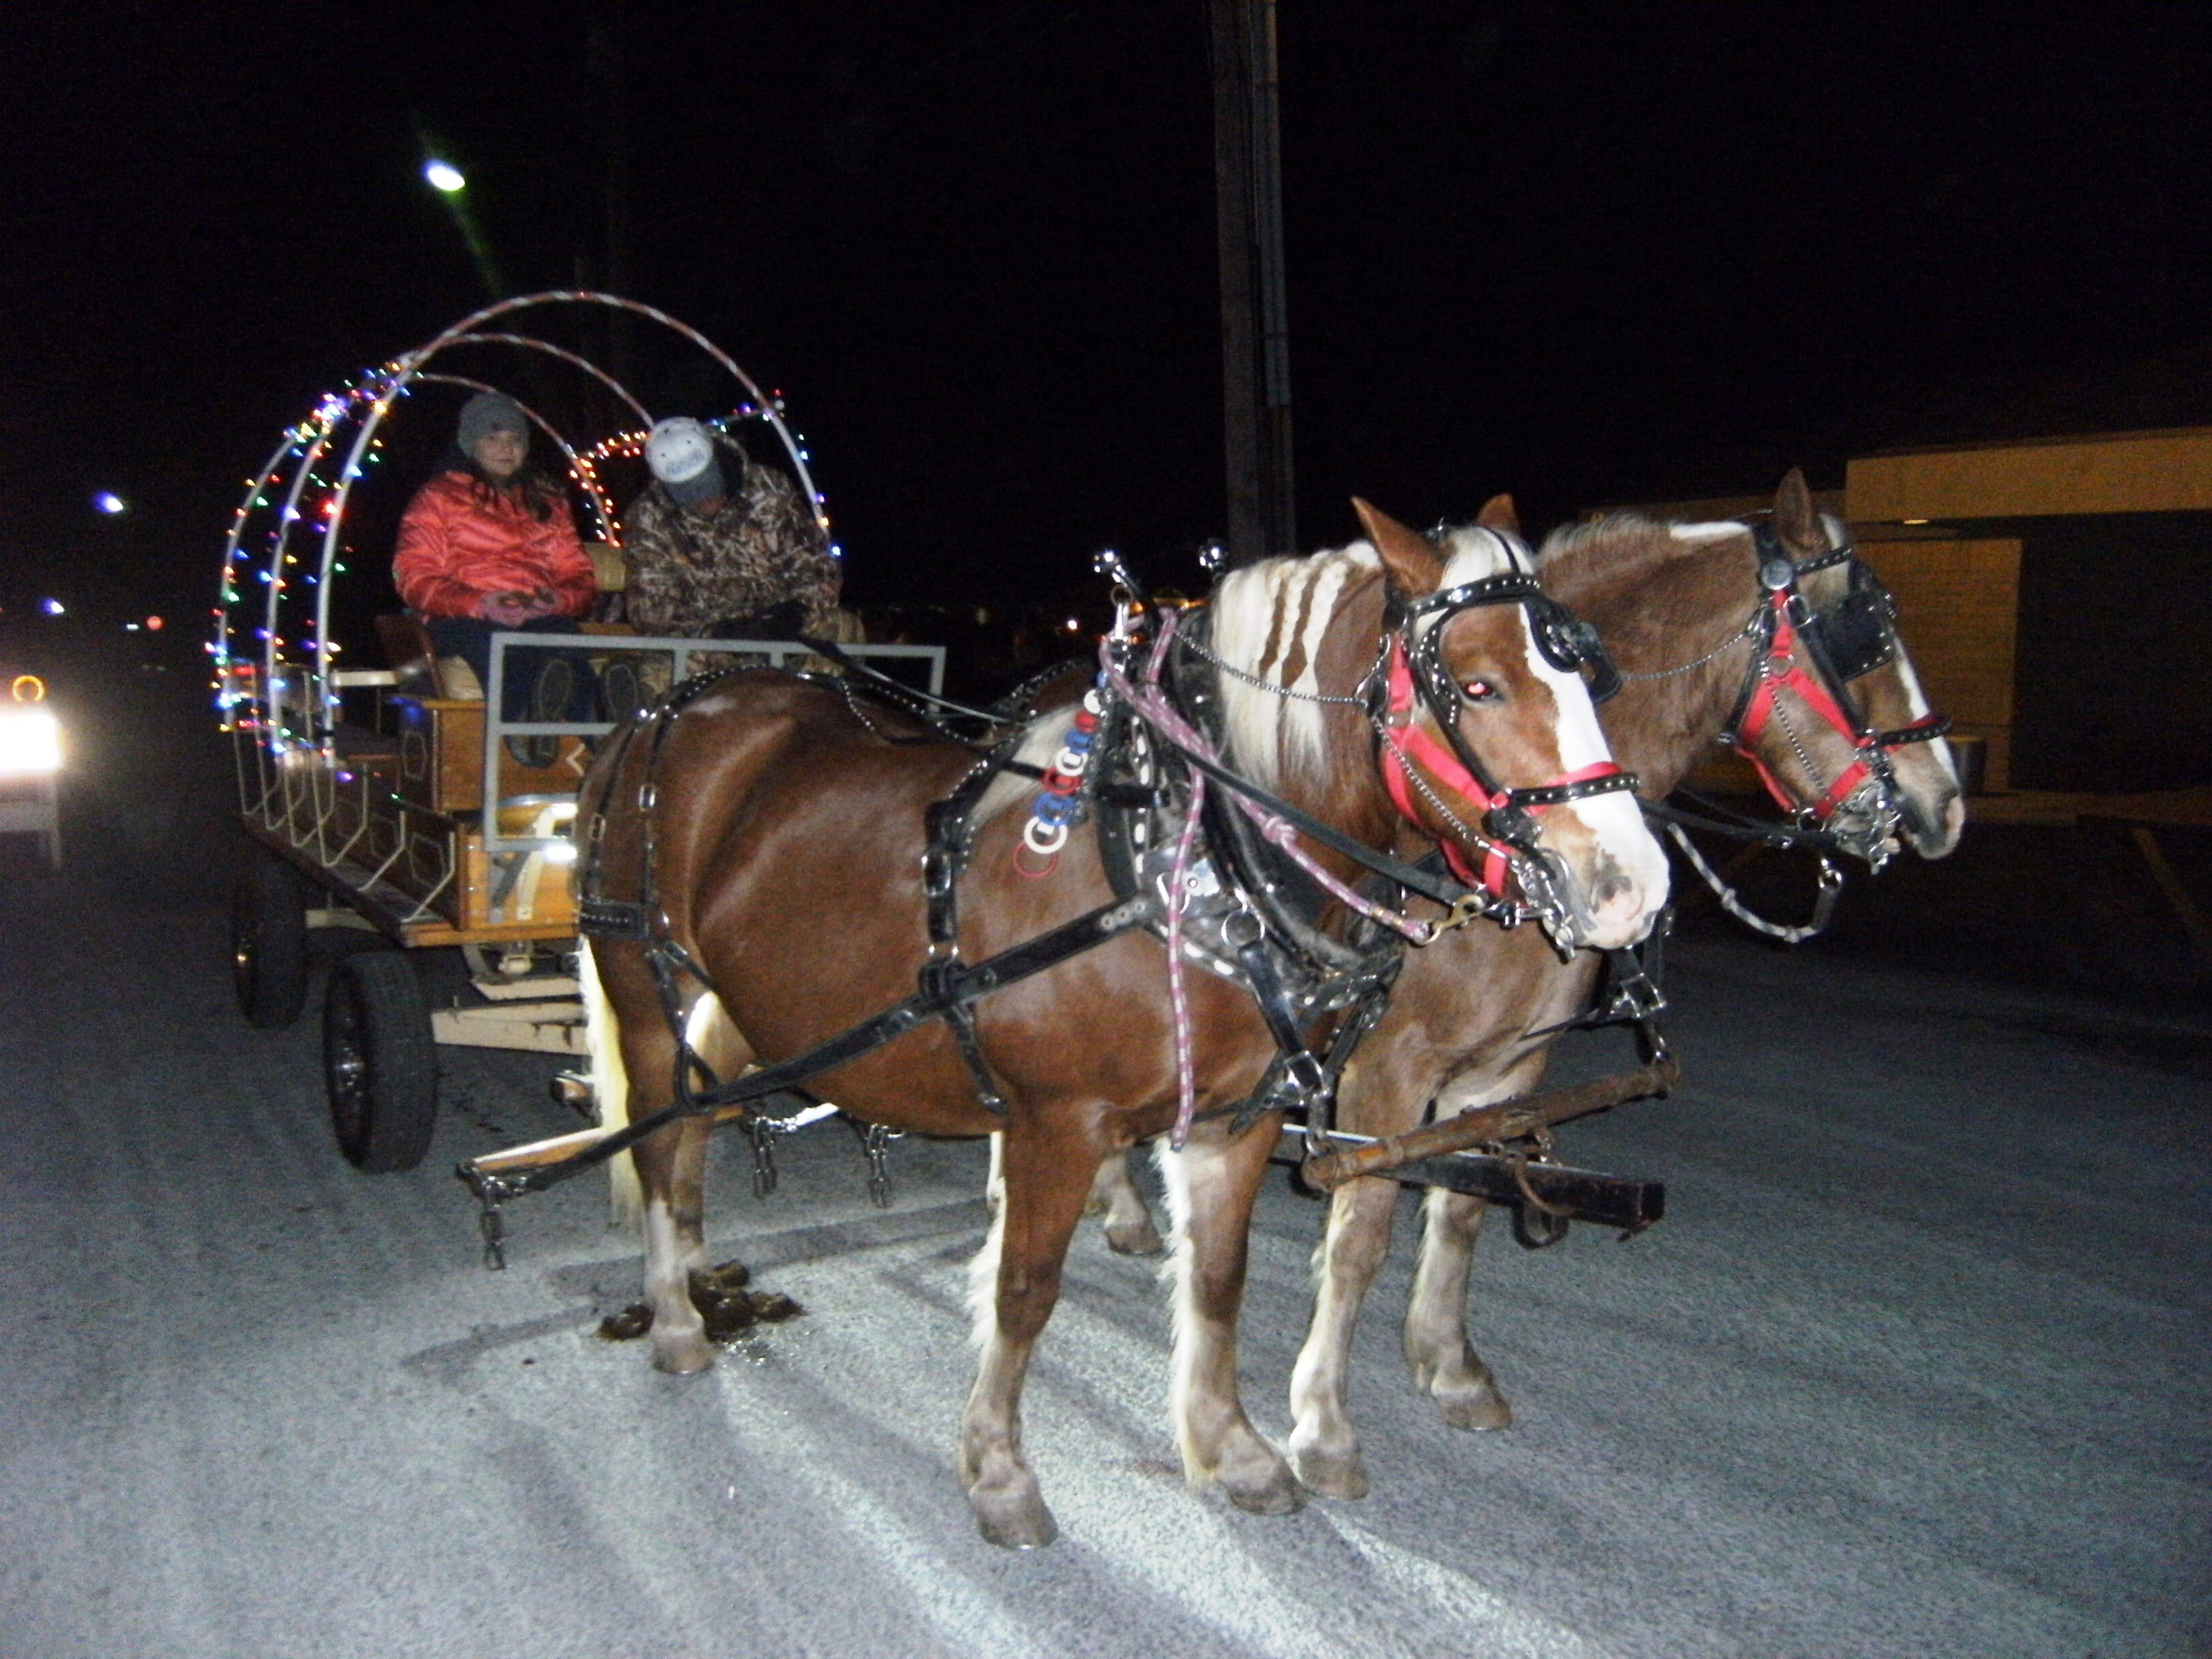 Horse drawn carrage rides provided by Paul Kuberski and Nelson Rule at the Murphy-Wall State Bank's 2017 Old Fashioned Christmas event